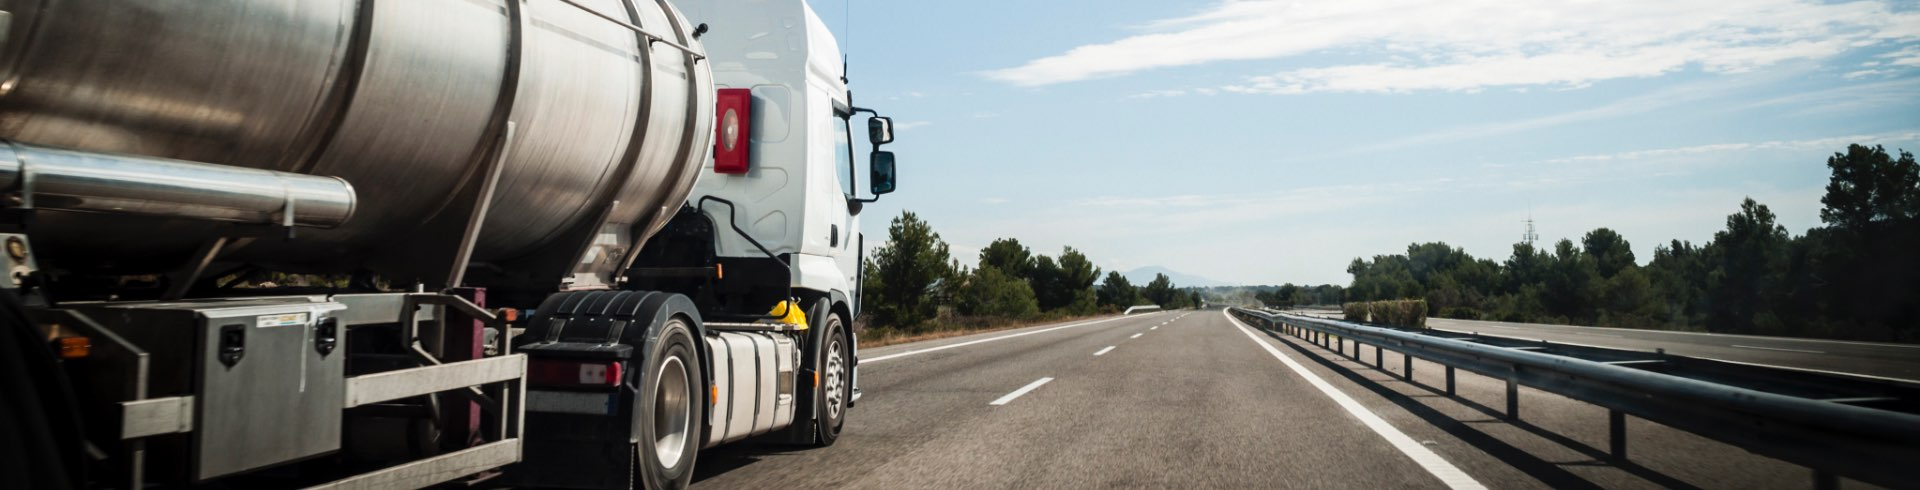 features-benefits-truck-on-the-road